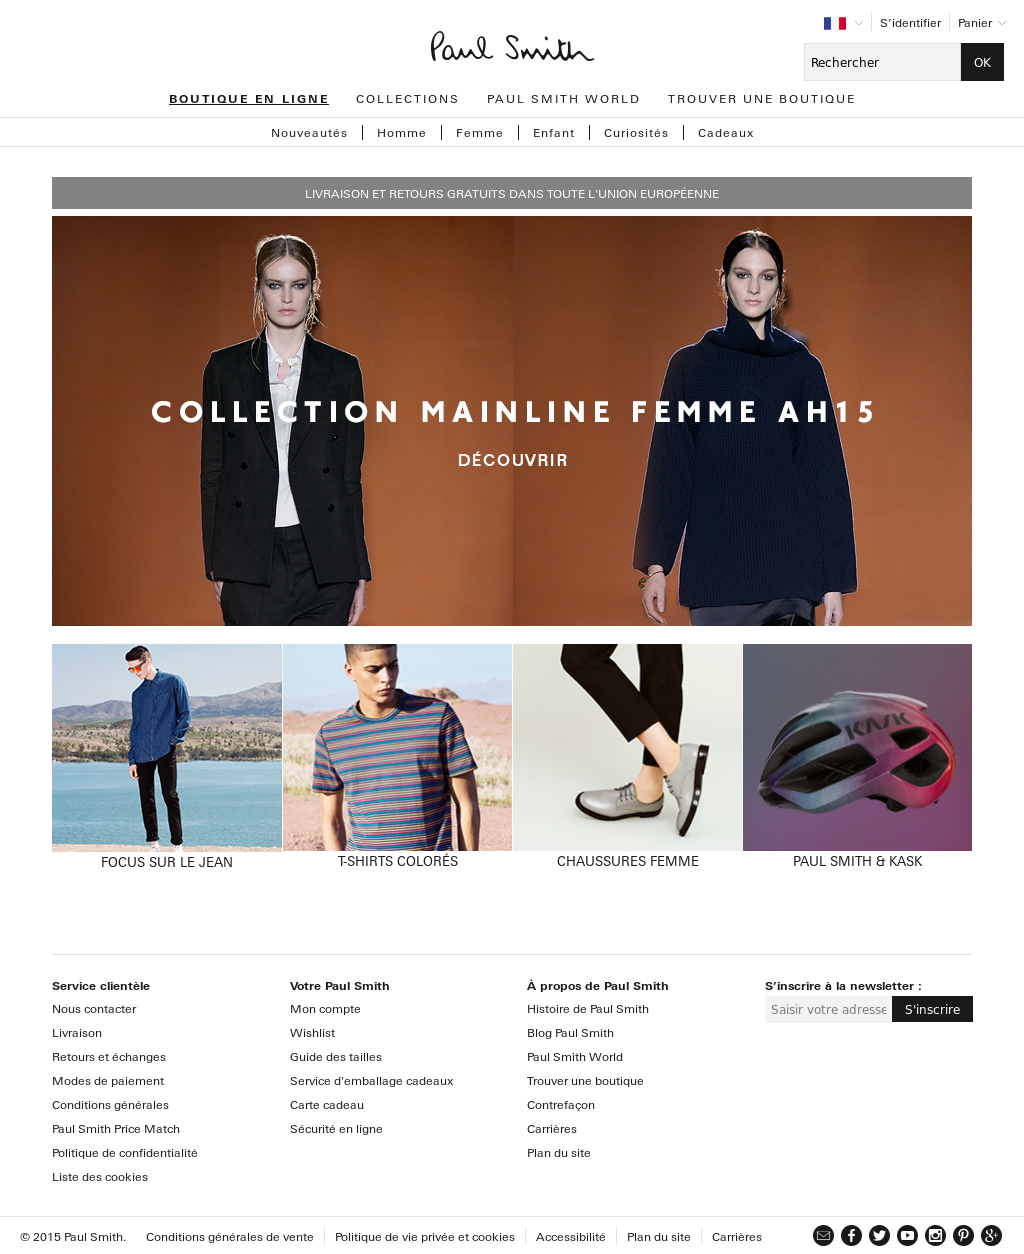 Paul Smith Competitors, Revenue and Employees - Owler Company Profile 6c37d4c881e5